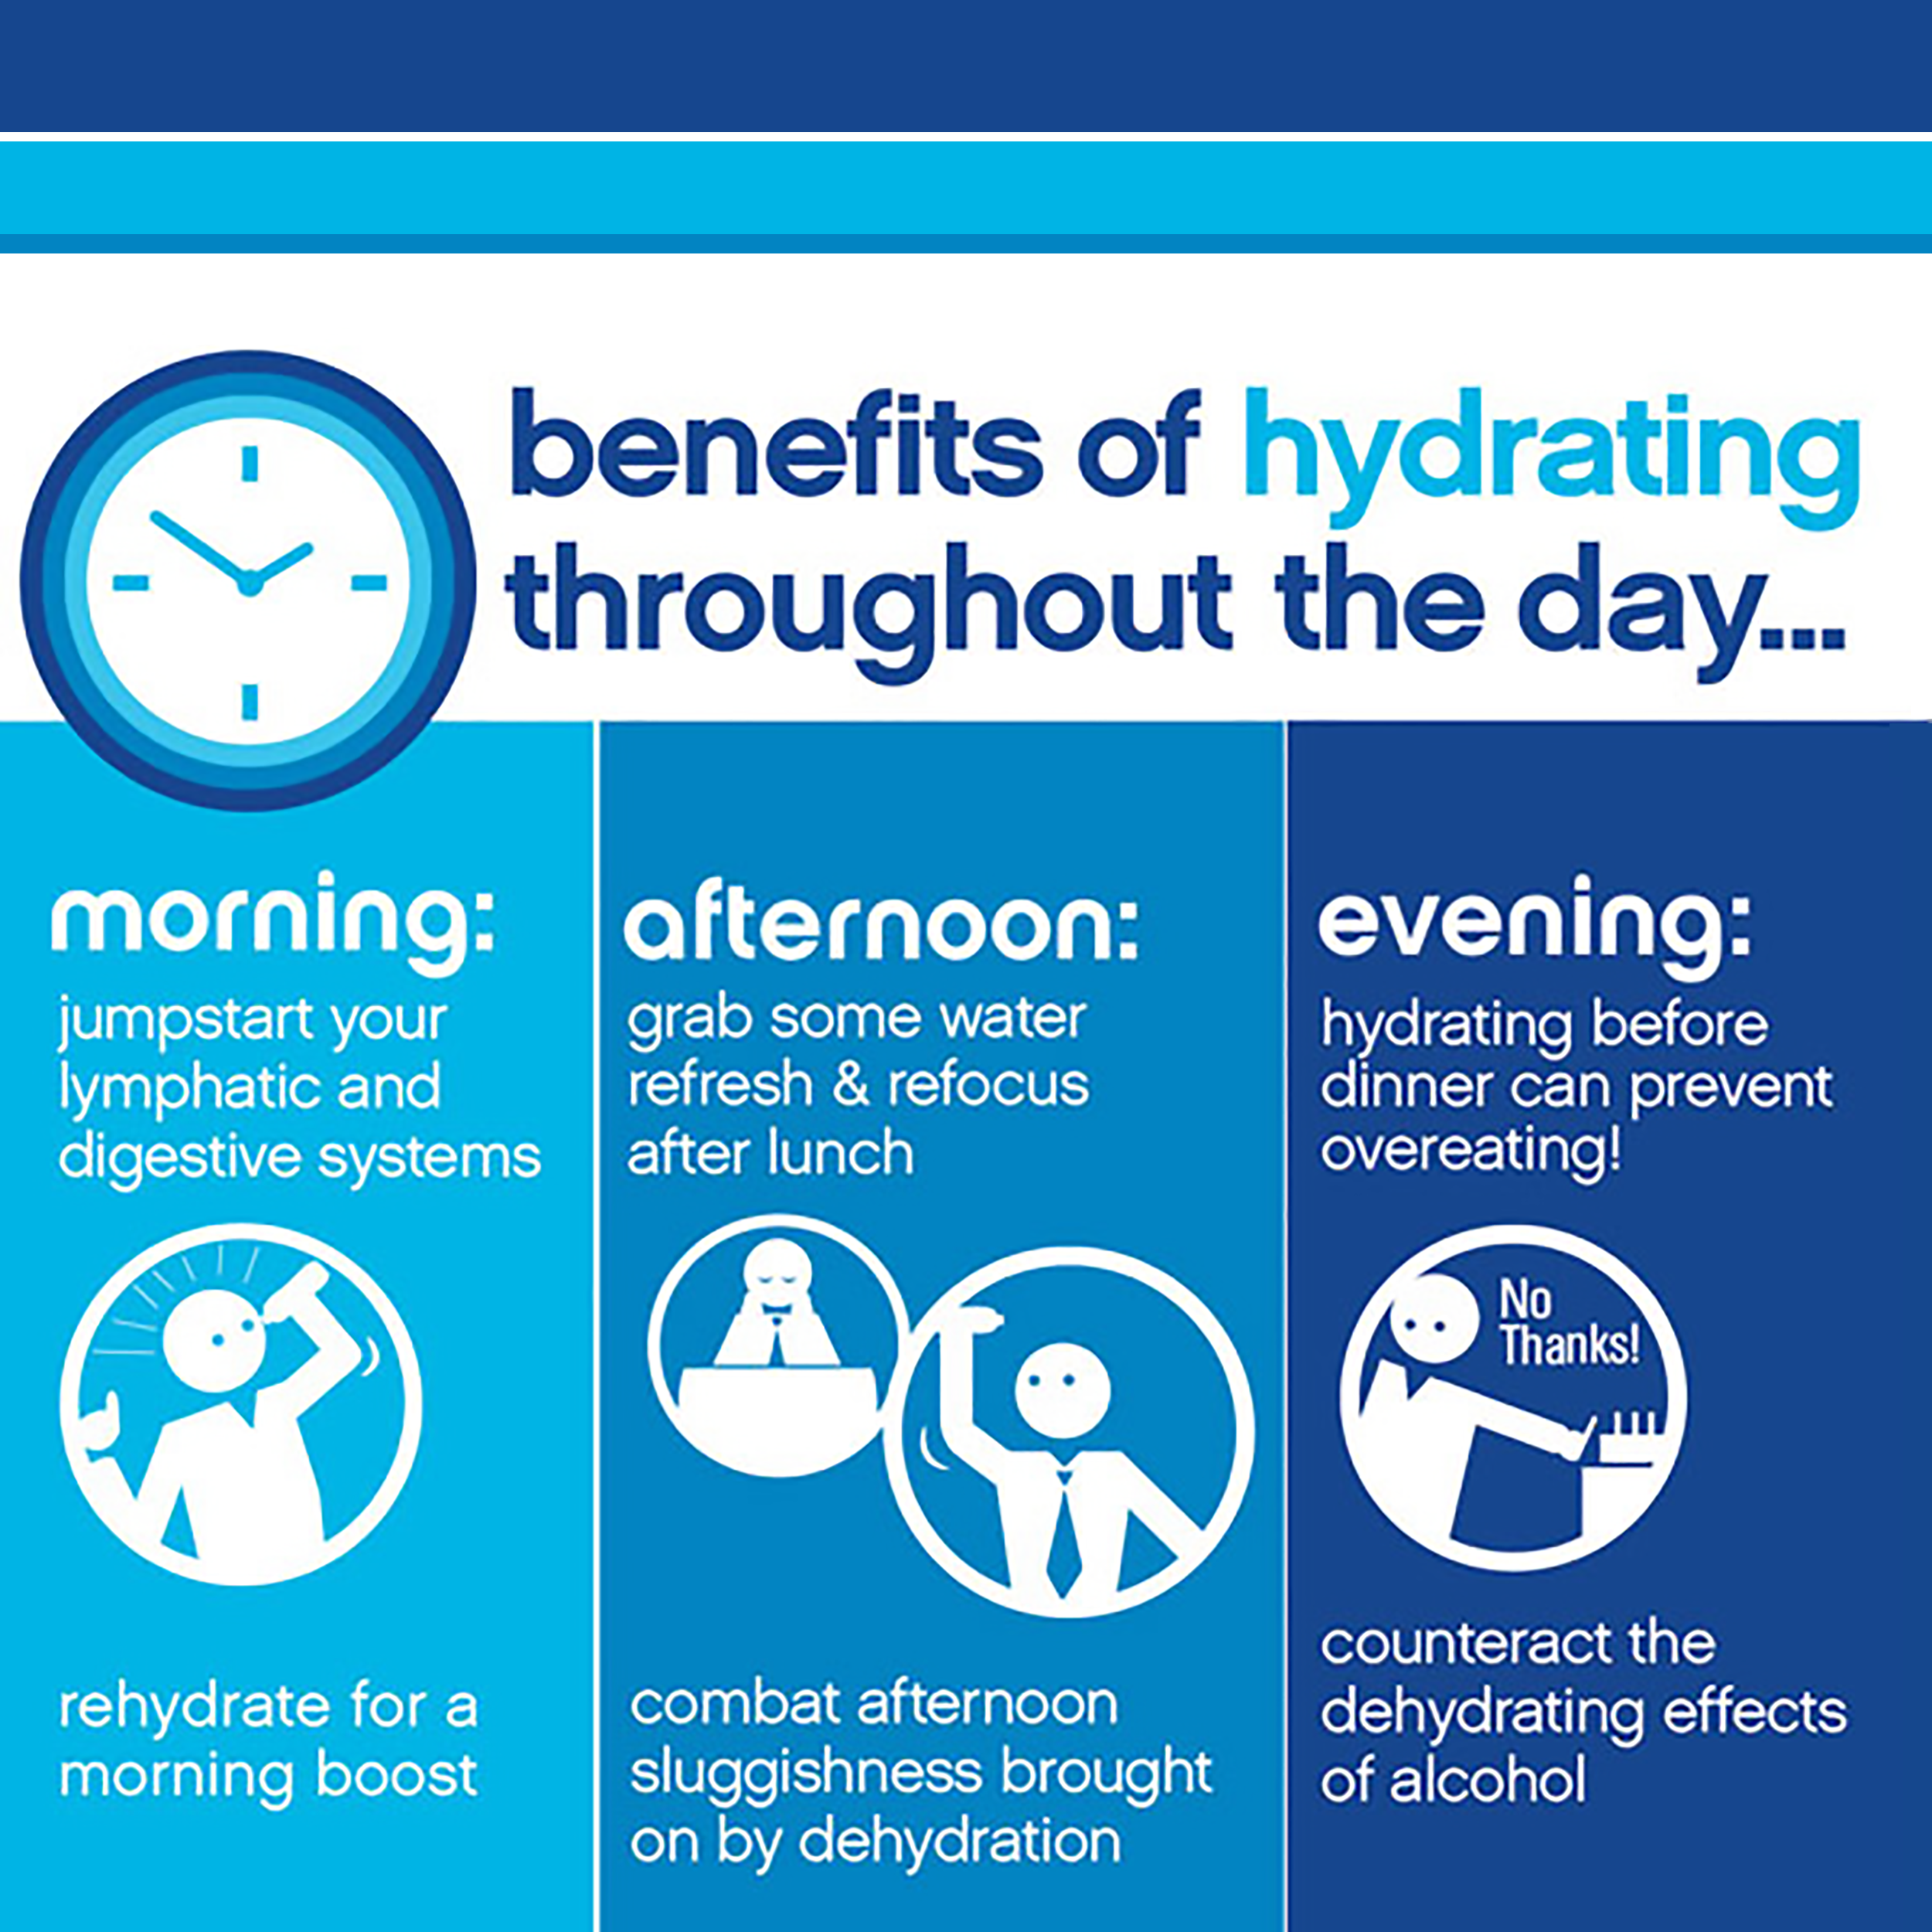 BENEFITS OF HYDRATION THROUGHOUT THE DAY